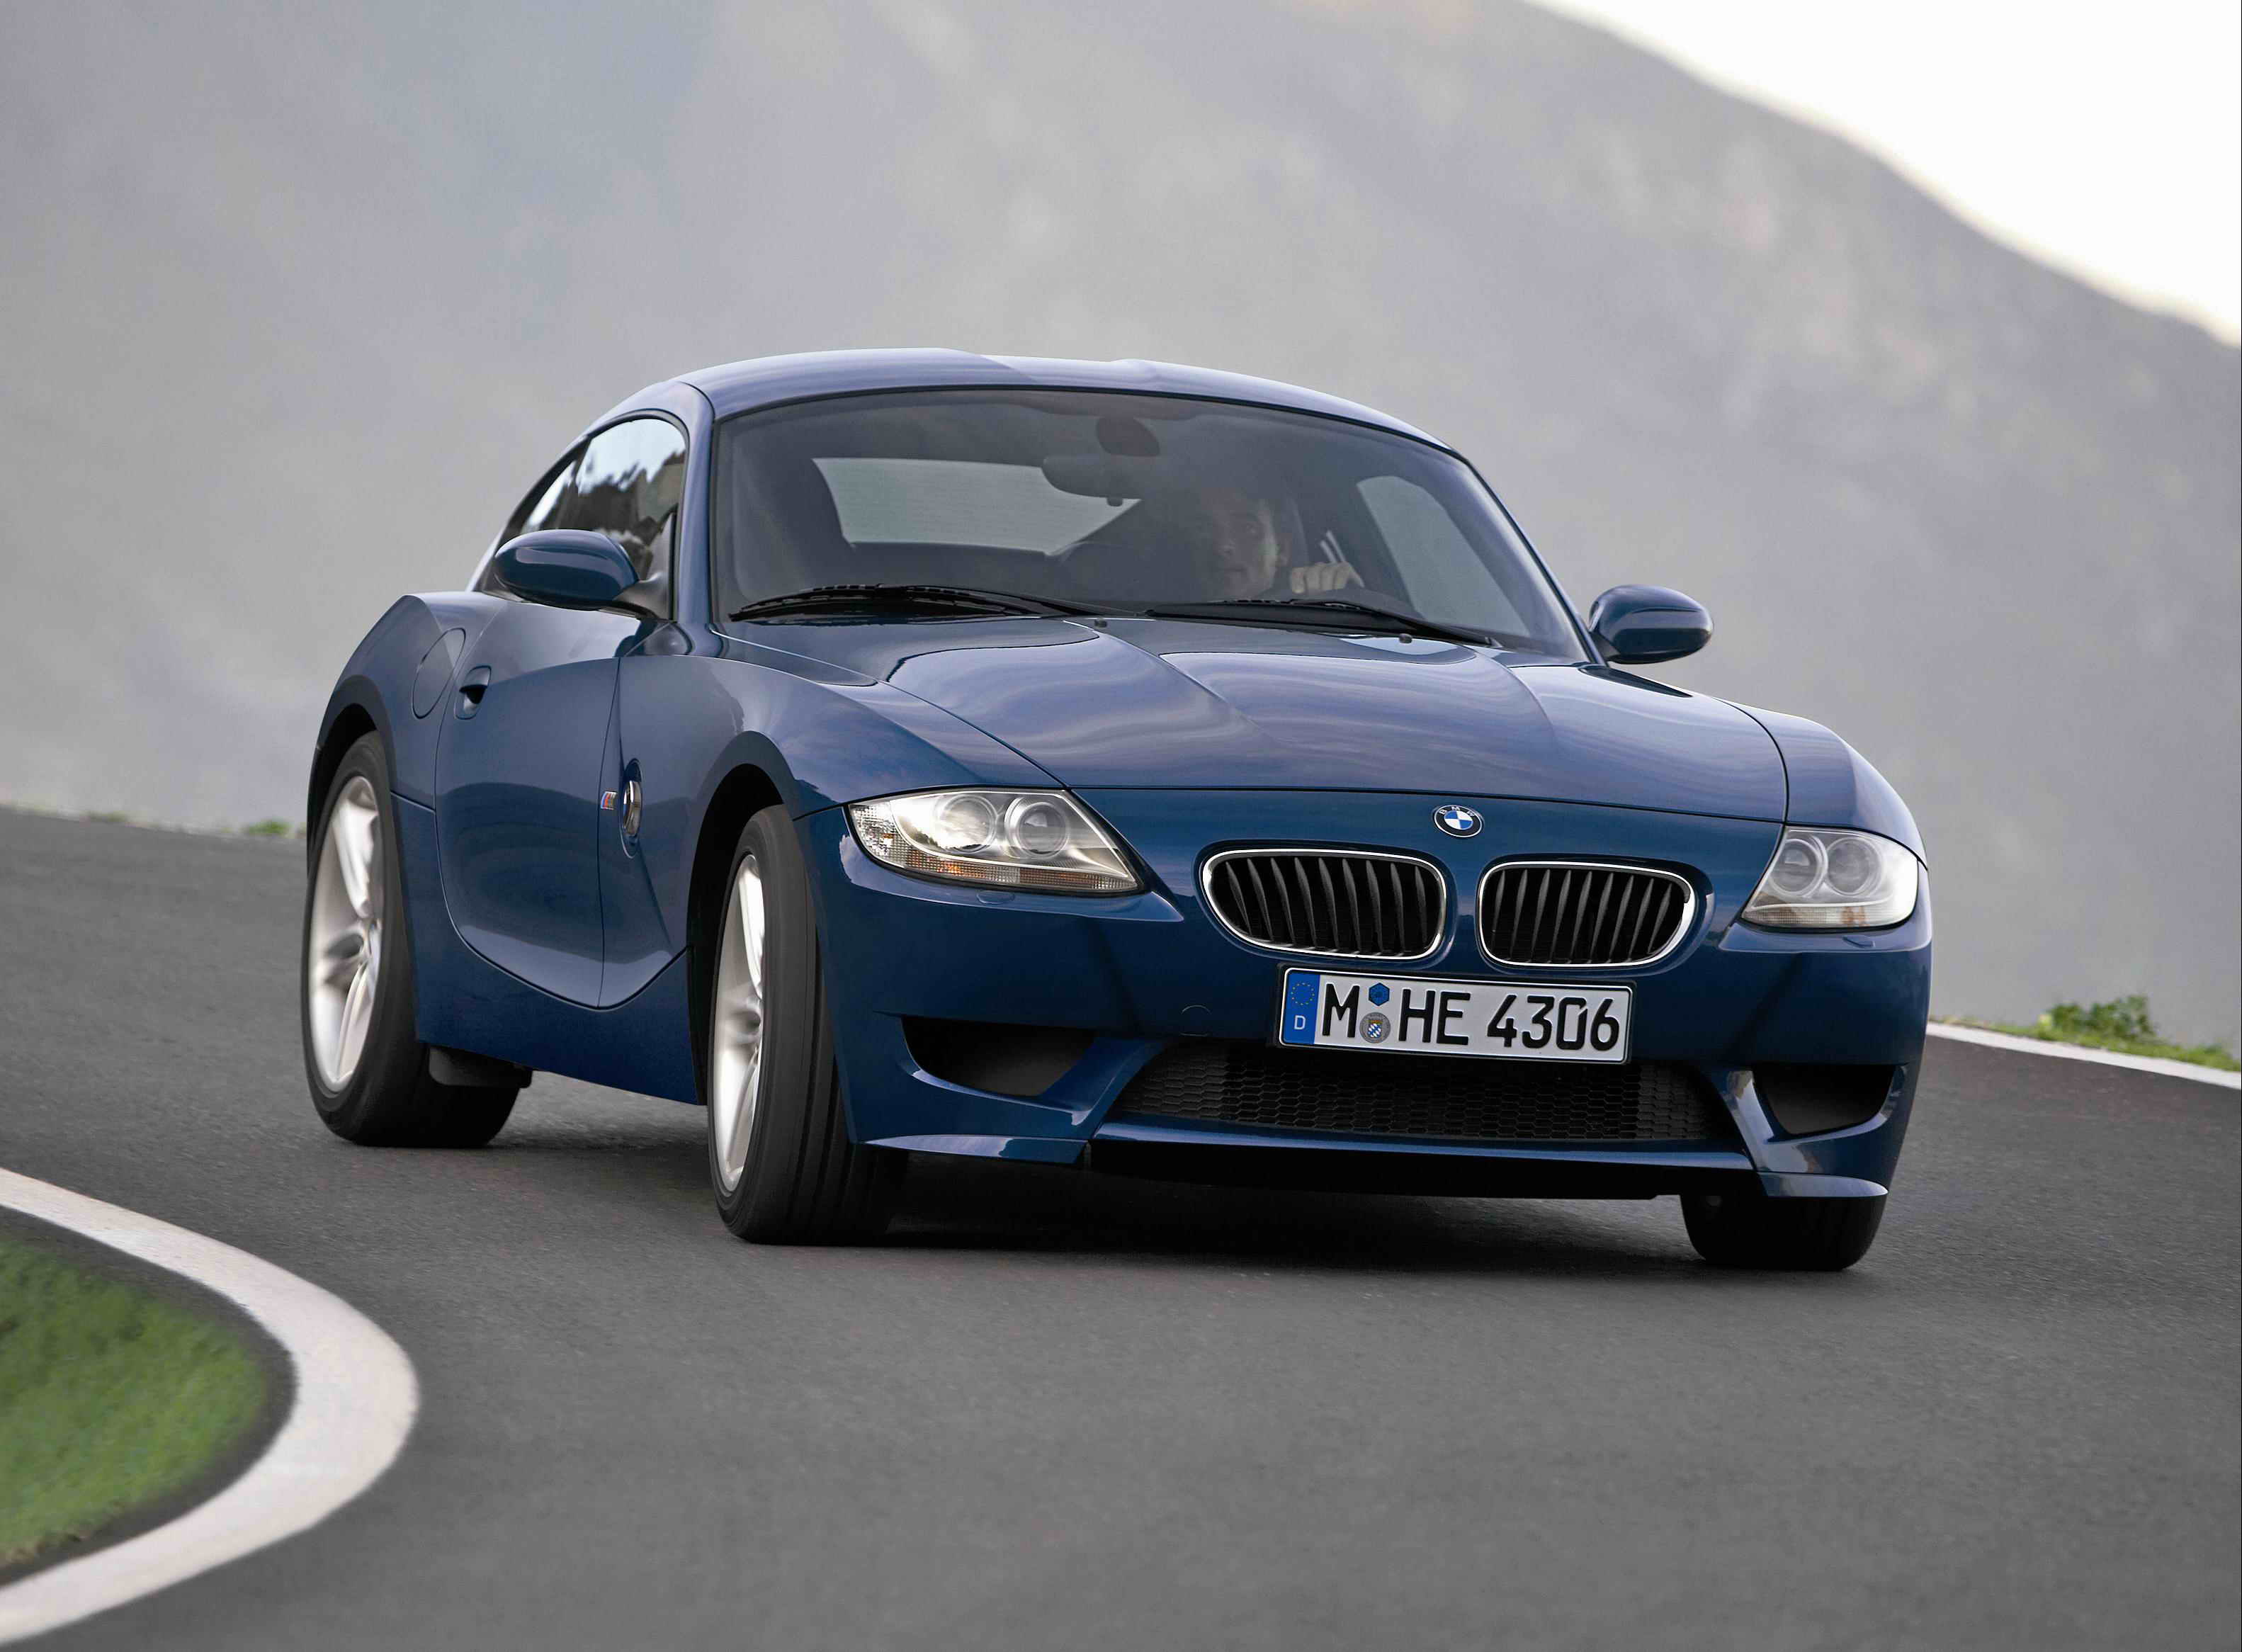 2007 Bmw Z4 M Coupe Gallery 64637 Top Speed